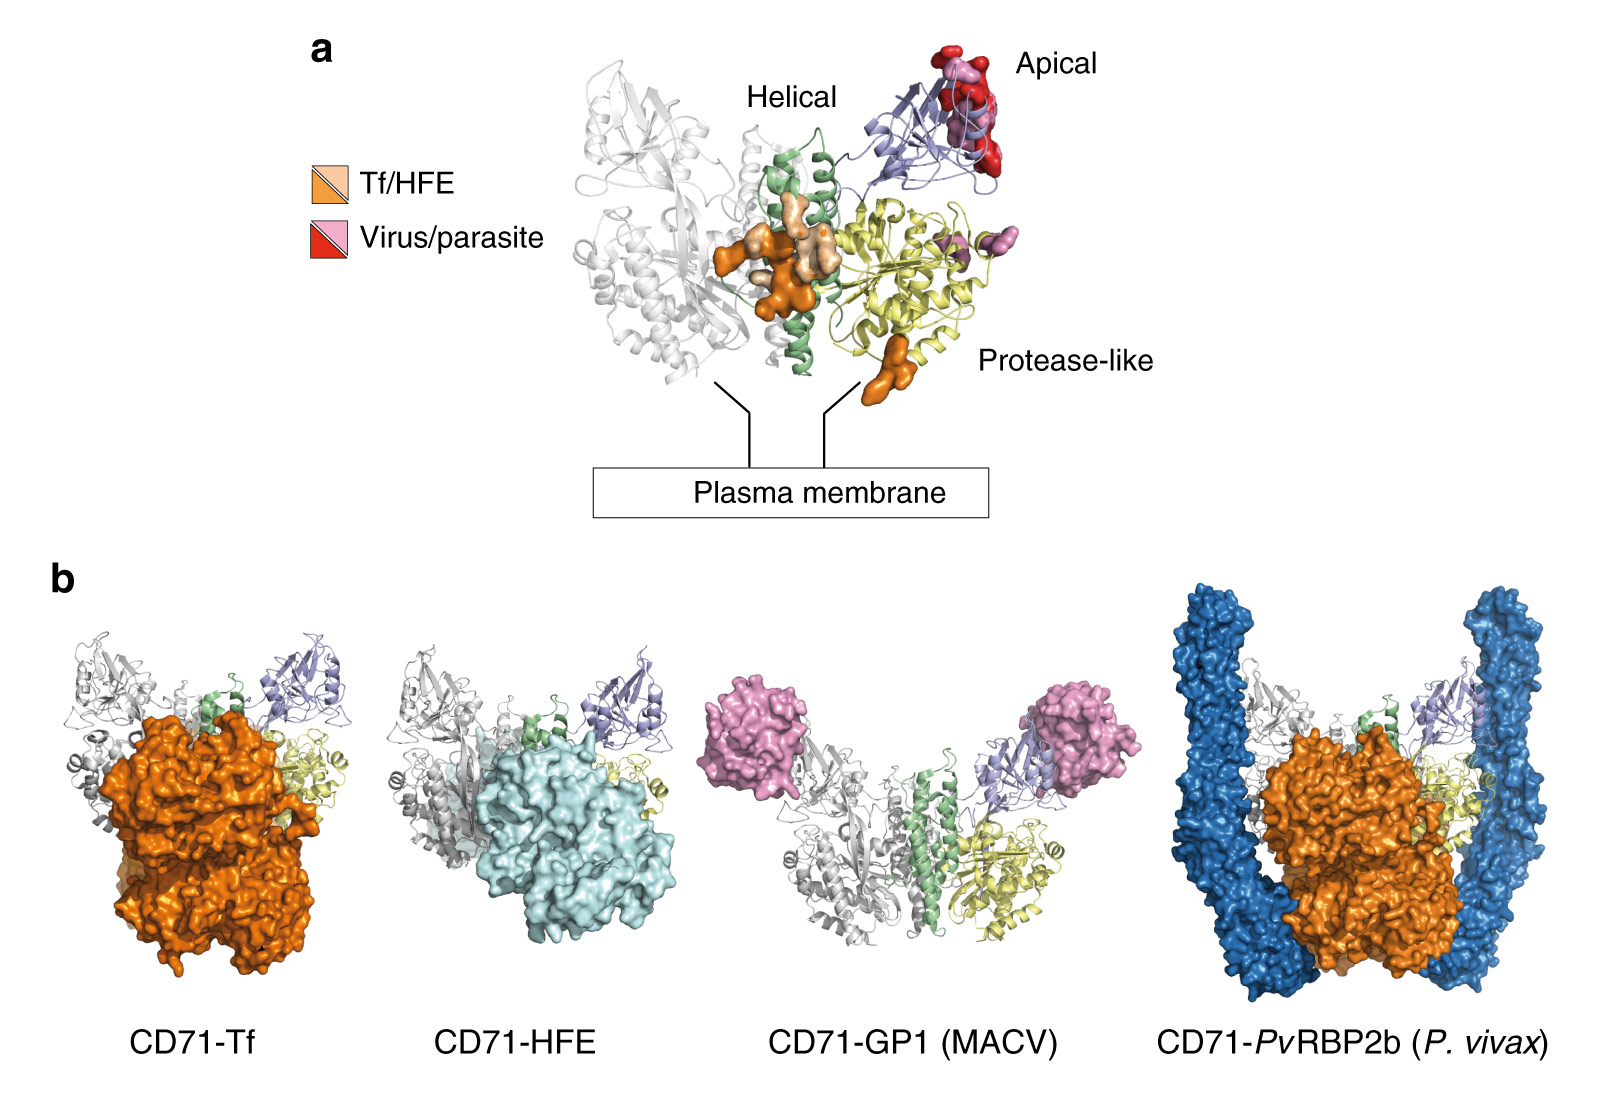 CD71 receptor- ligand recognition epitopes and binding modes